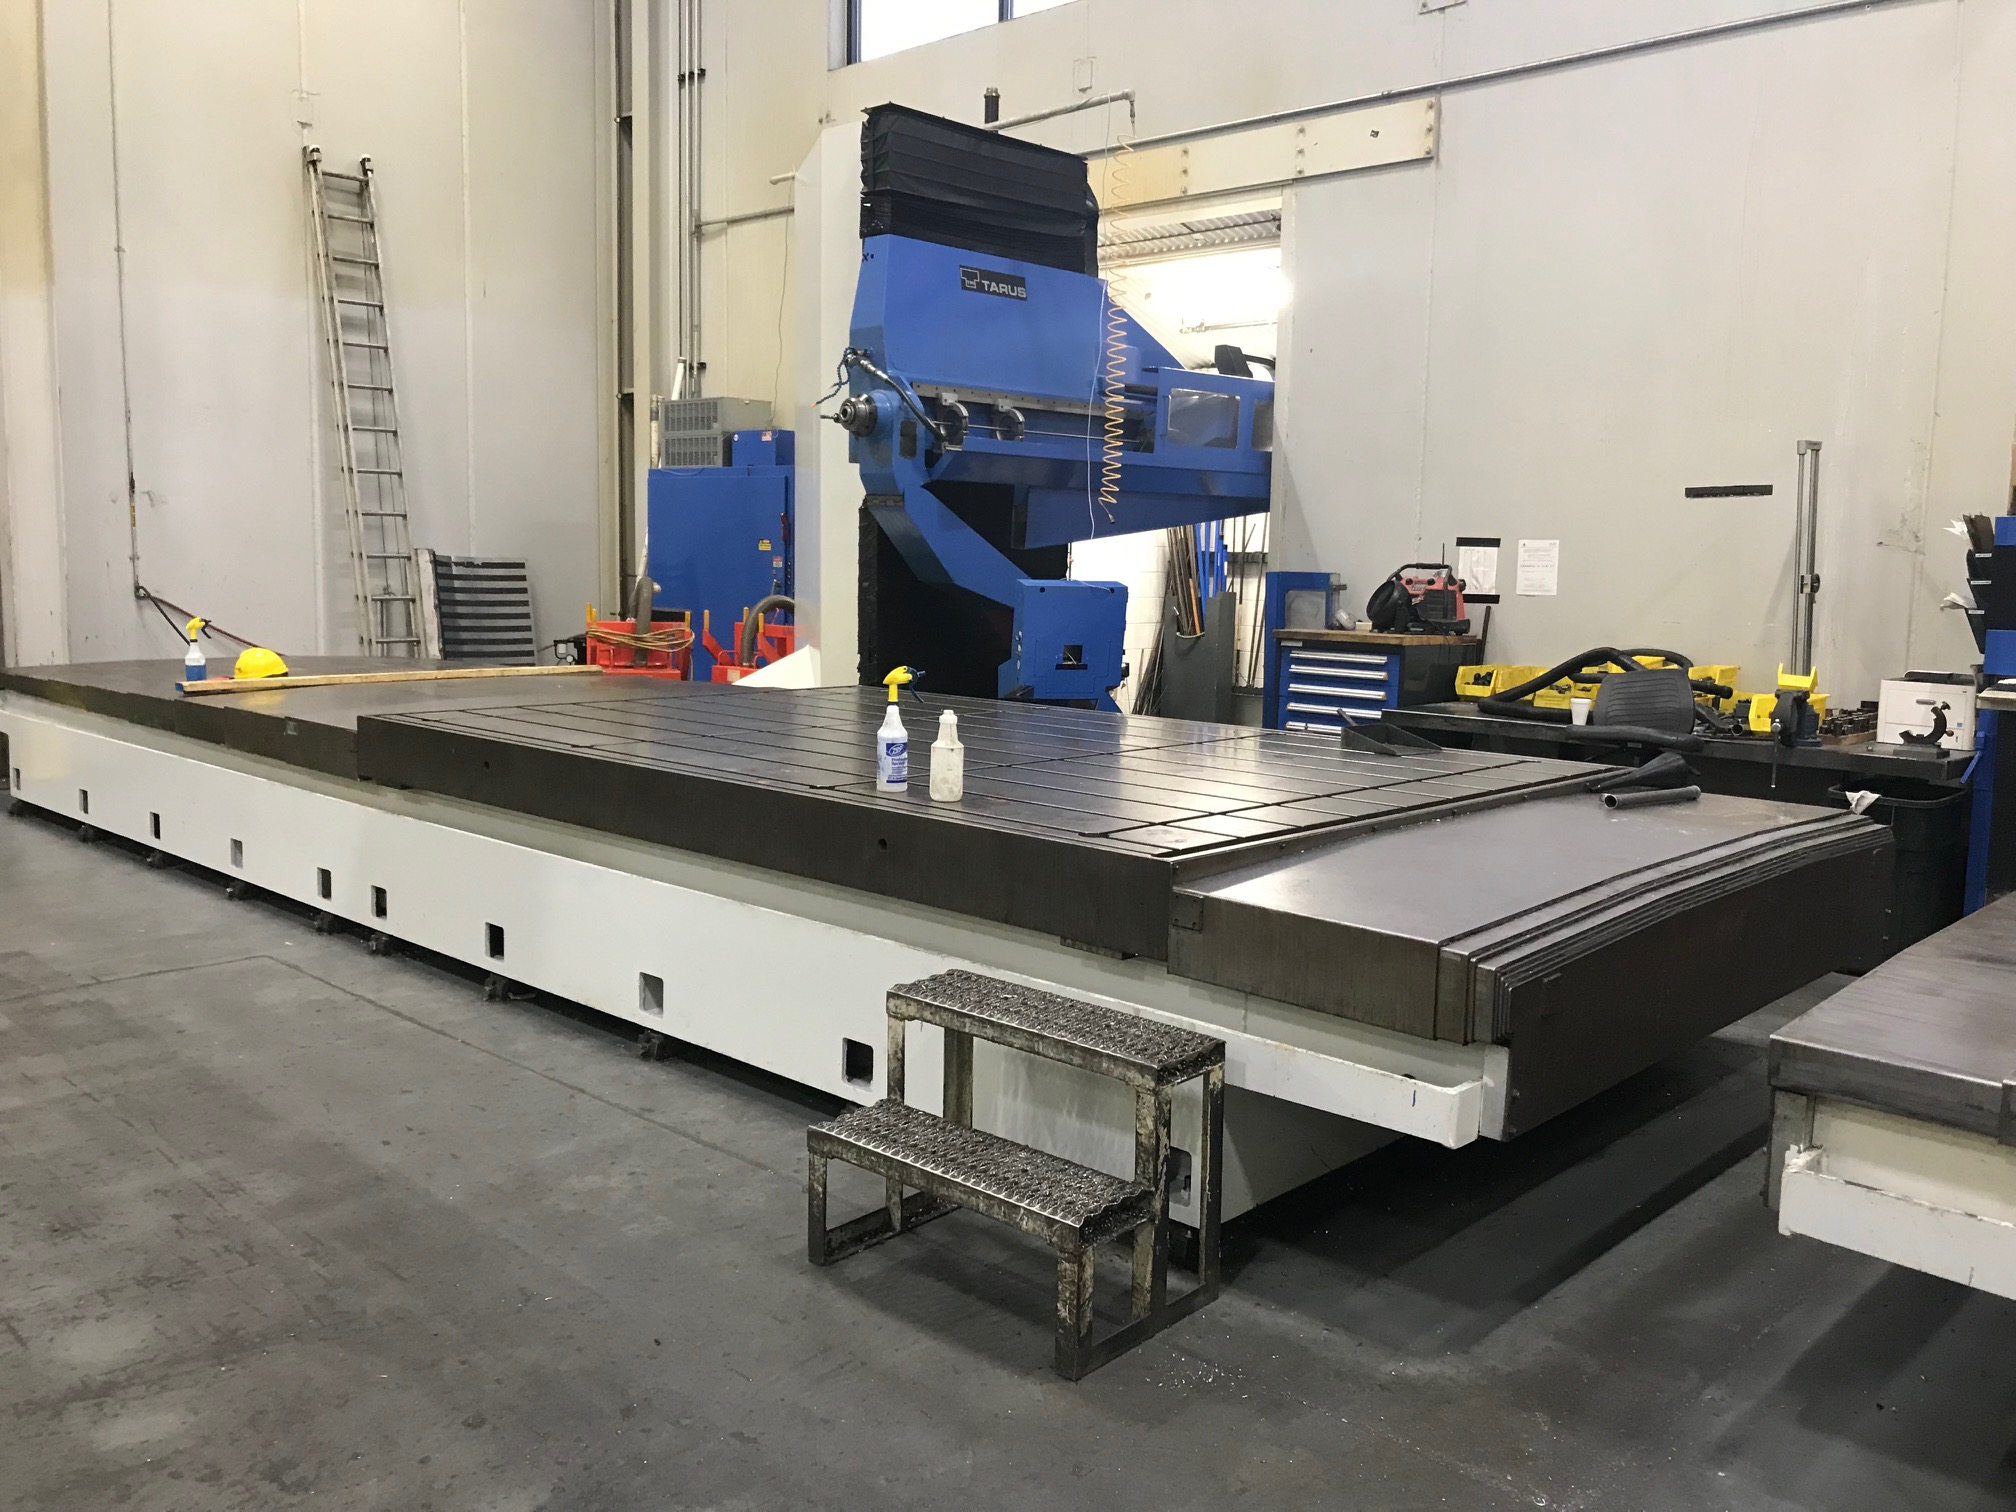 TARUS MODEL TPTCGD512S, 4-AXIS Dual CNC Gun Drilling System (sharing a Centralized Coolant System) - Image 2 of 15